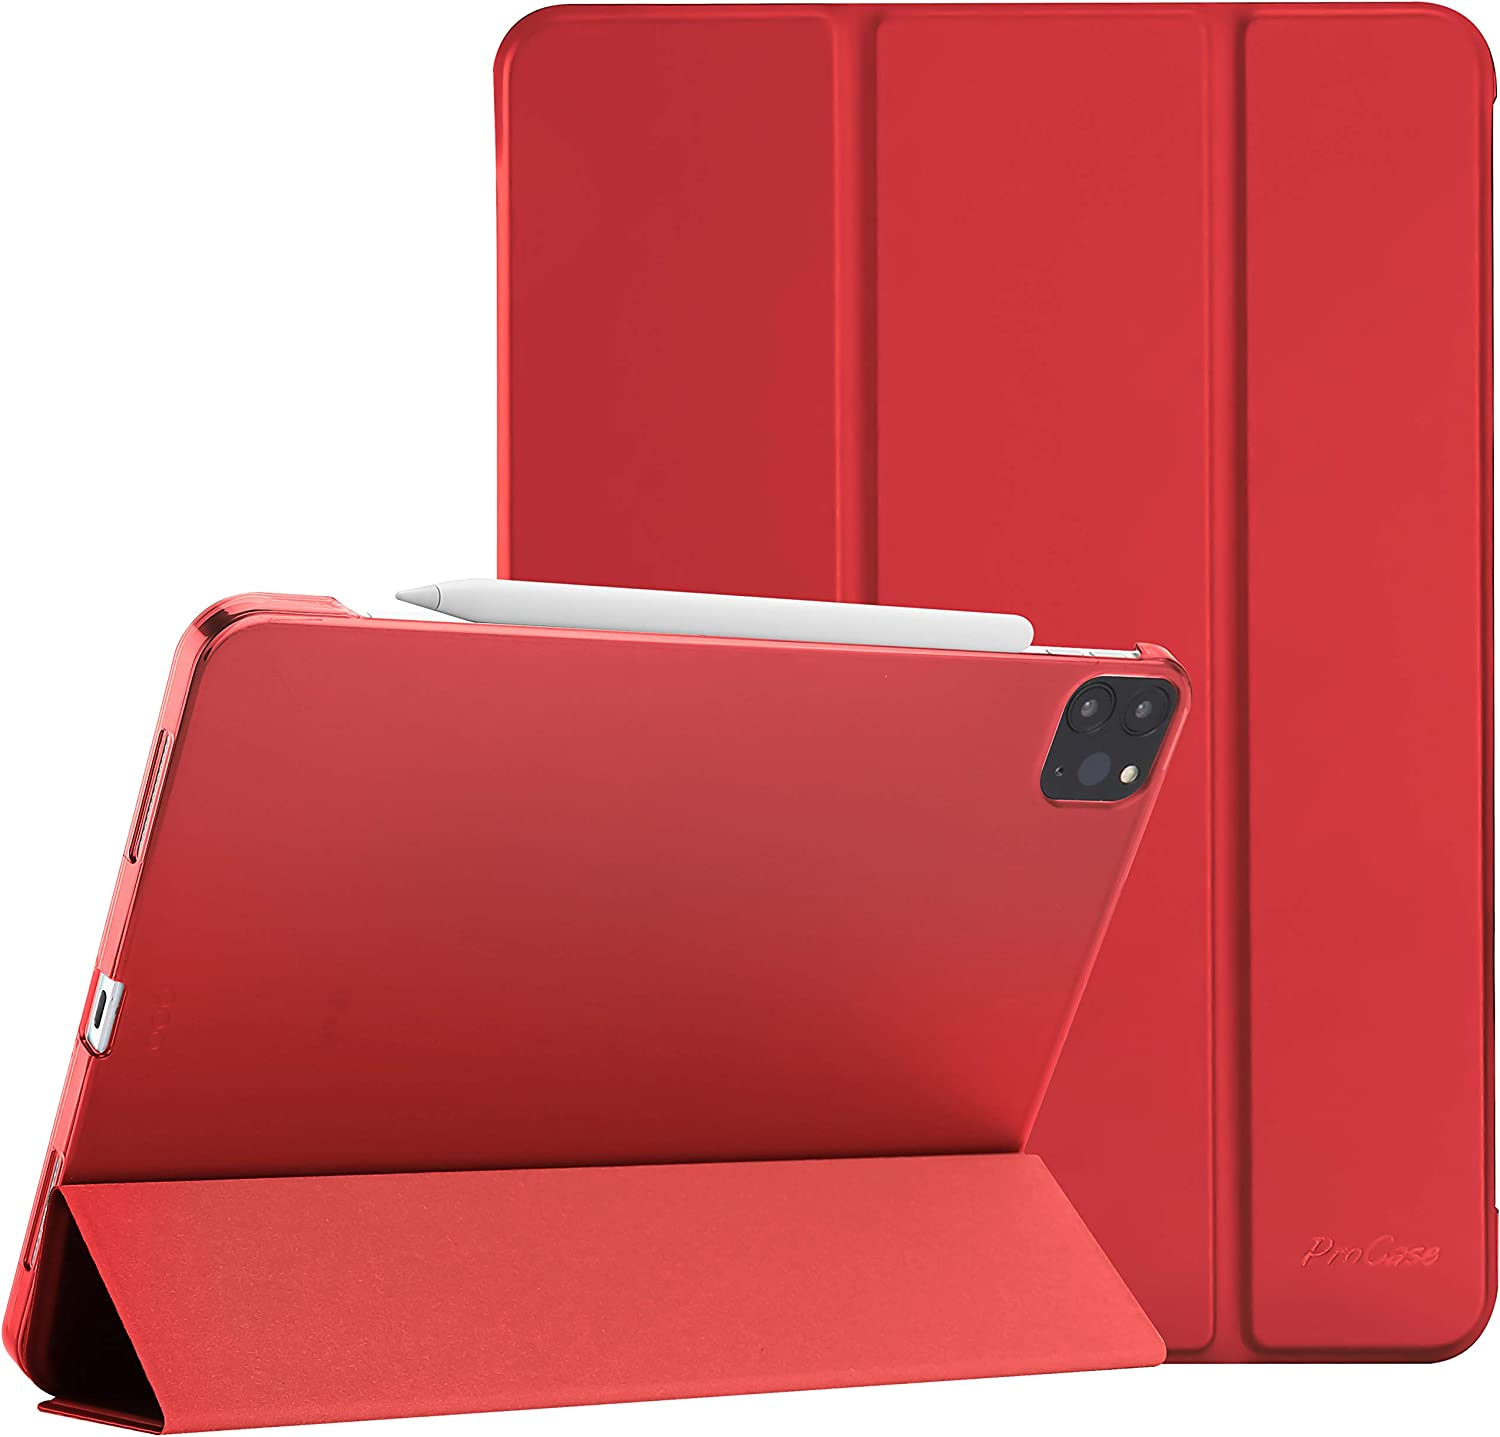 "ProCase iPad Pro 12.9 Case 4th Generation 2020 & 2018, [Support Apple Pencil 2 Charging] Slim Stand Hard Back Shell Smart Cover for iPad Pro 12.9"" 4th Gen 2020 / iPad Pro 12.9"" 3rd Gen 2018 -Red"